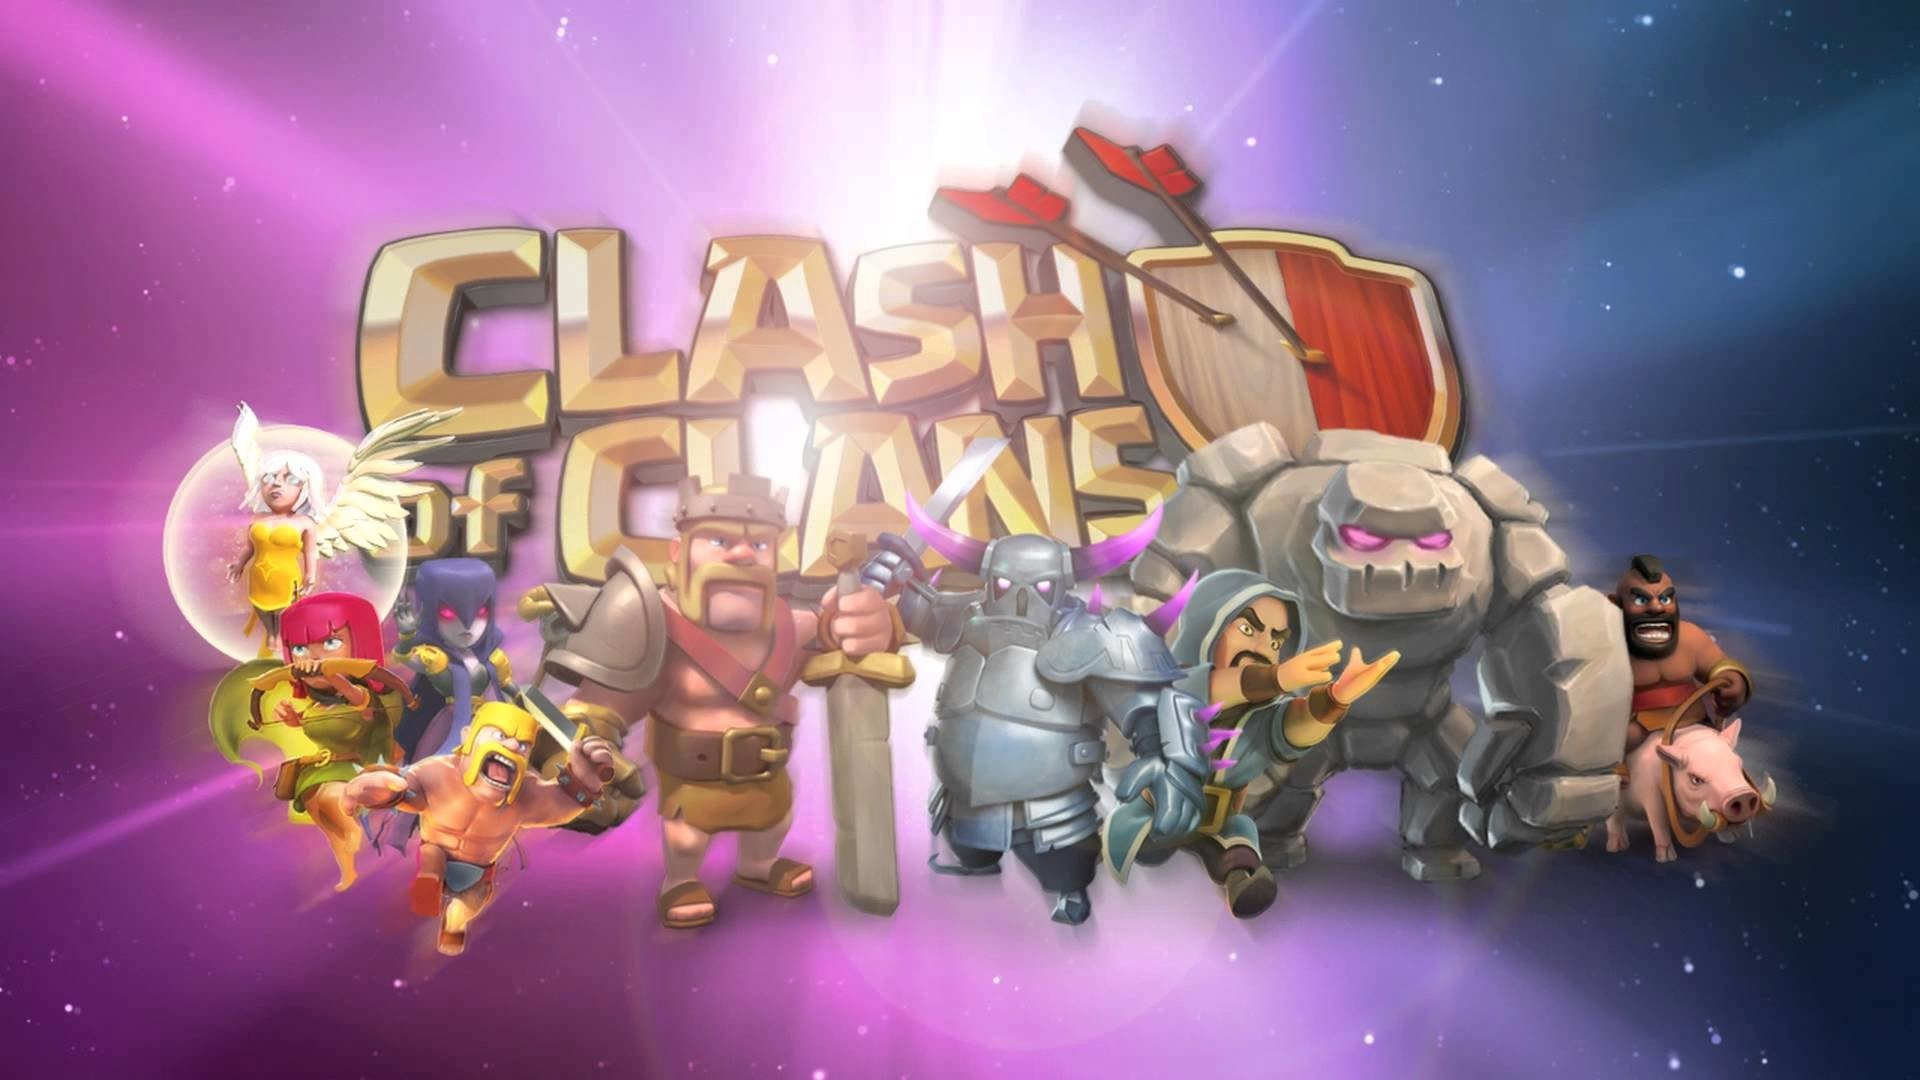 Video Game - Clash of Clans  Wallpaper